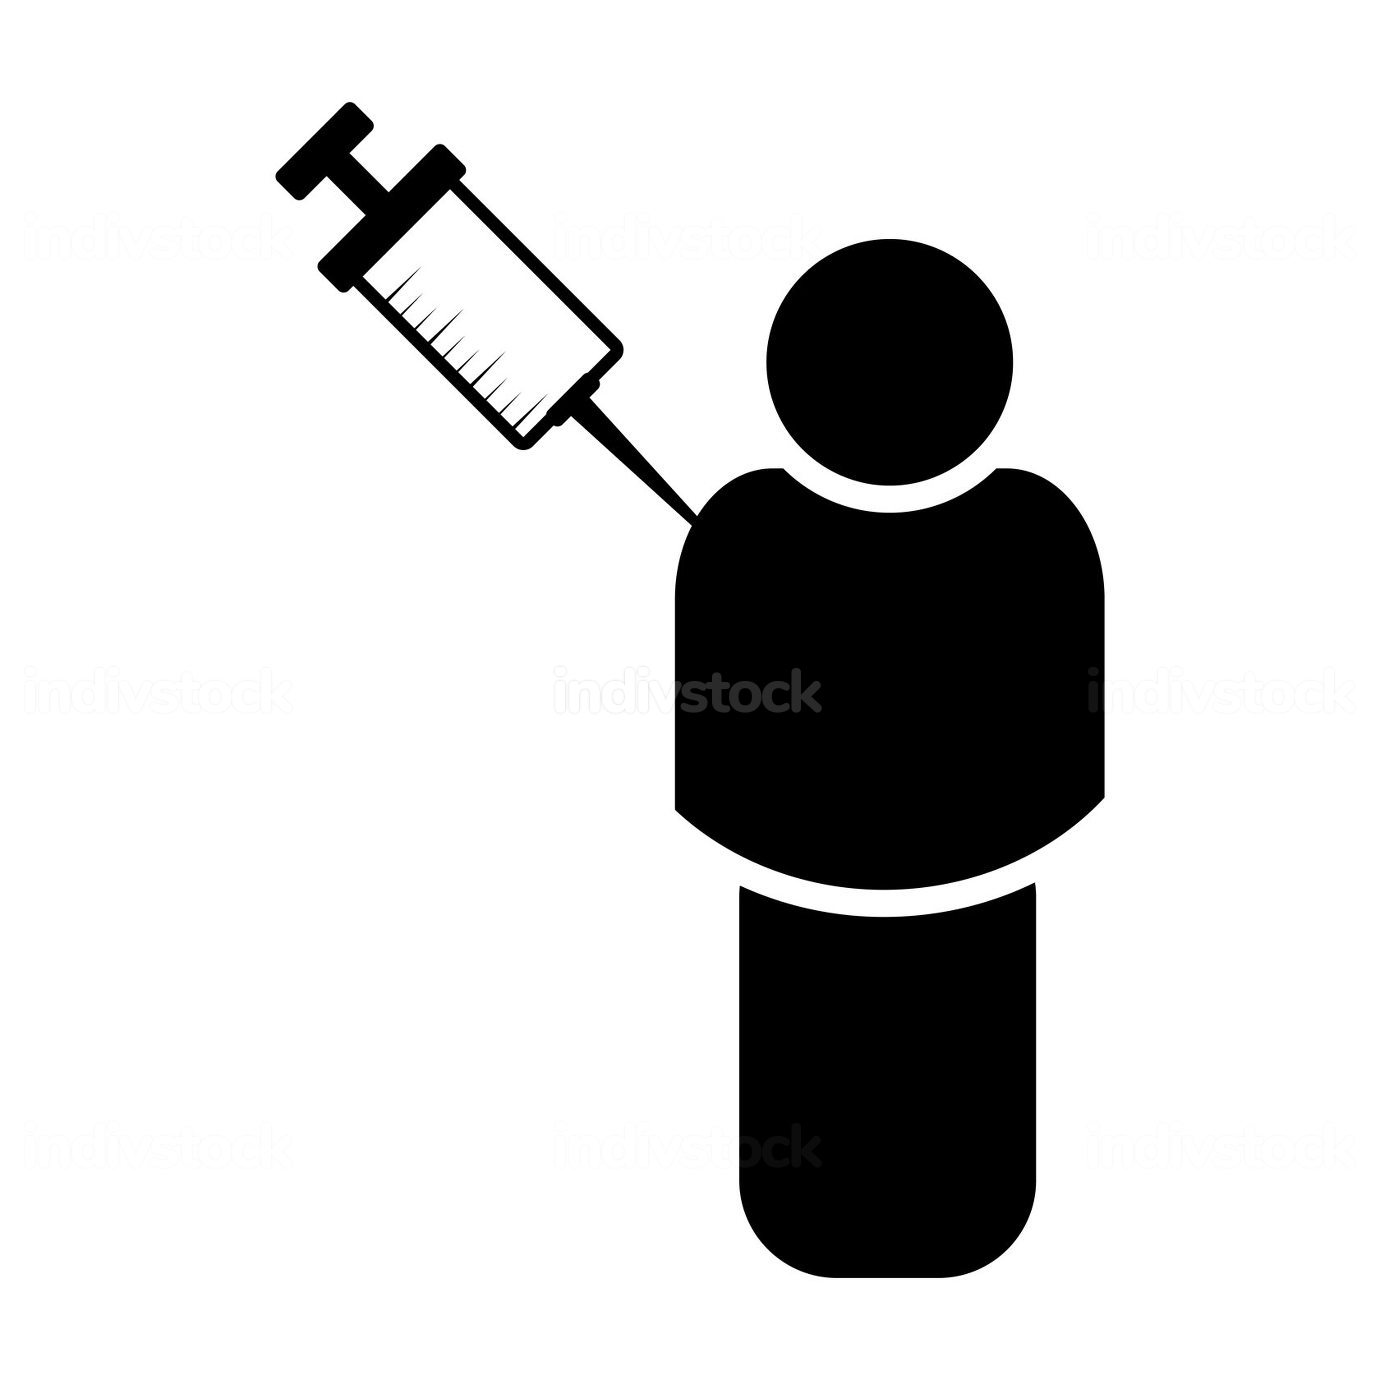 Vaccination symbol. Human body icon with syringe contains vaccin